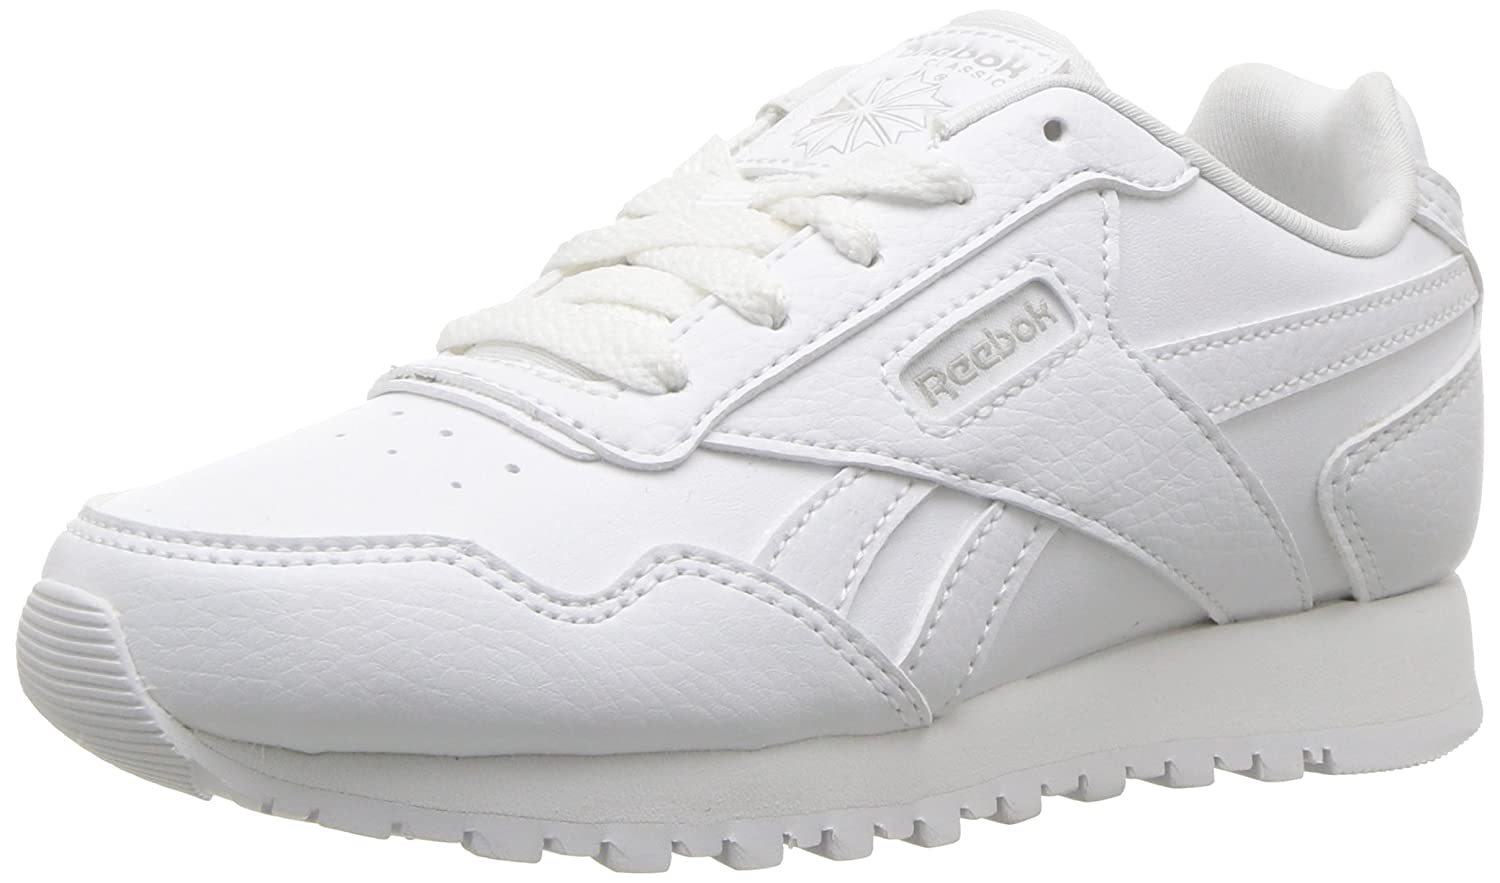 bdfdadbfc7bc8 Reebok Kid's REEBOK CL HARMAN RUN S Shoe 4.5 Child US, Little Kid,  white/steel